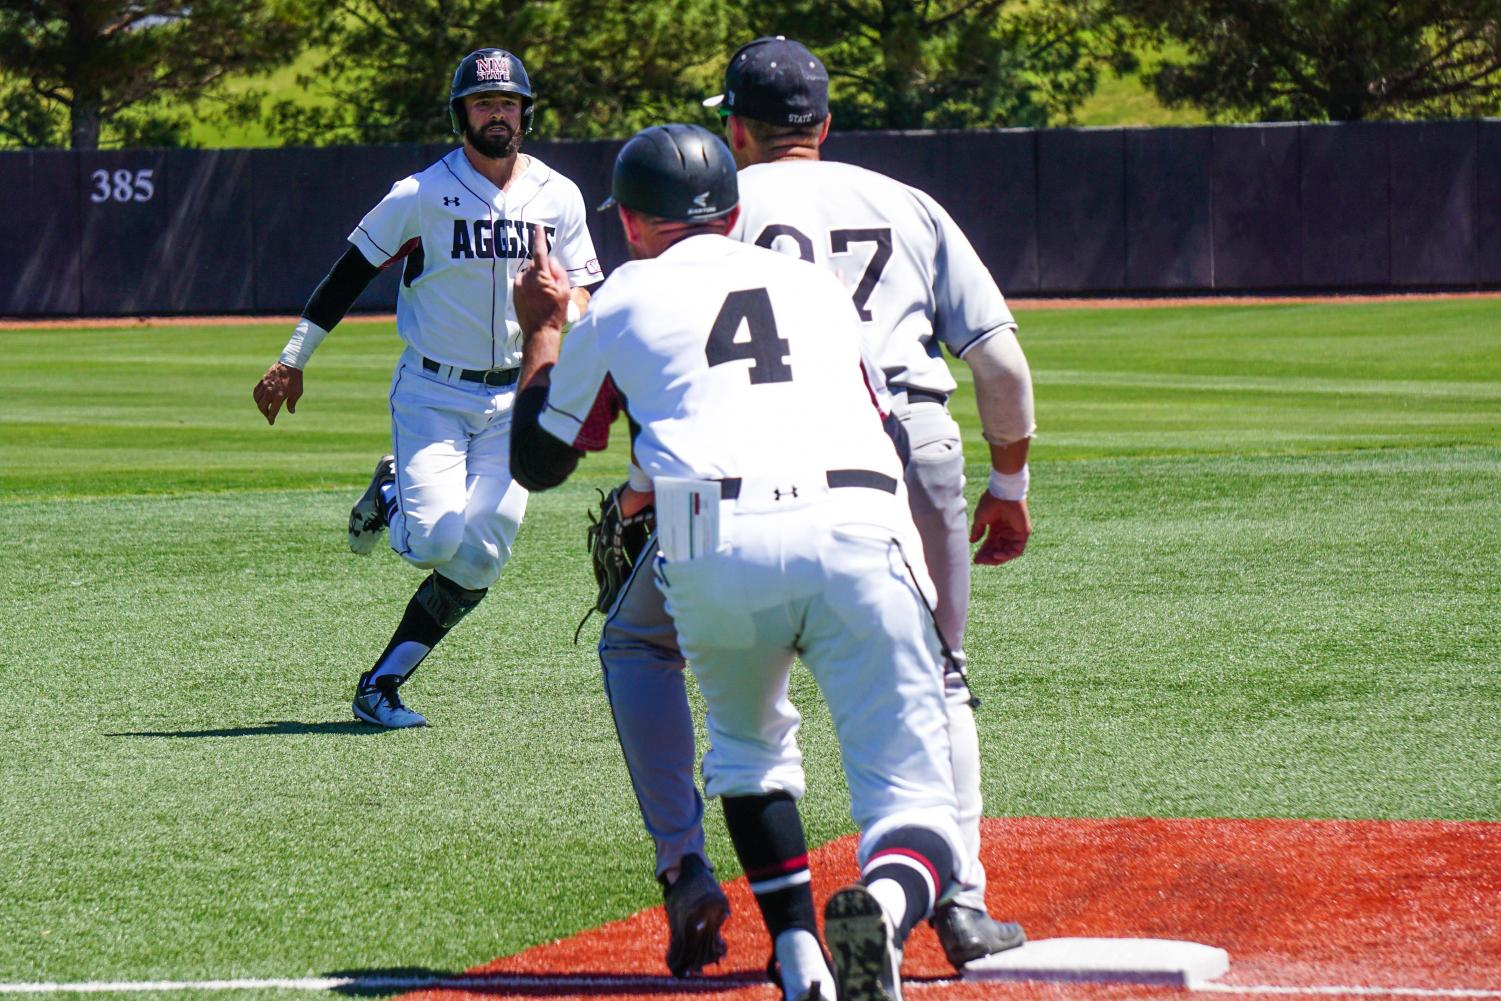 A NMSU base-runner gets ready to slide in to third base during Sunday's series finale against Utah Valley.